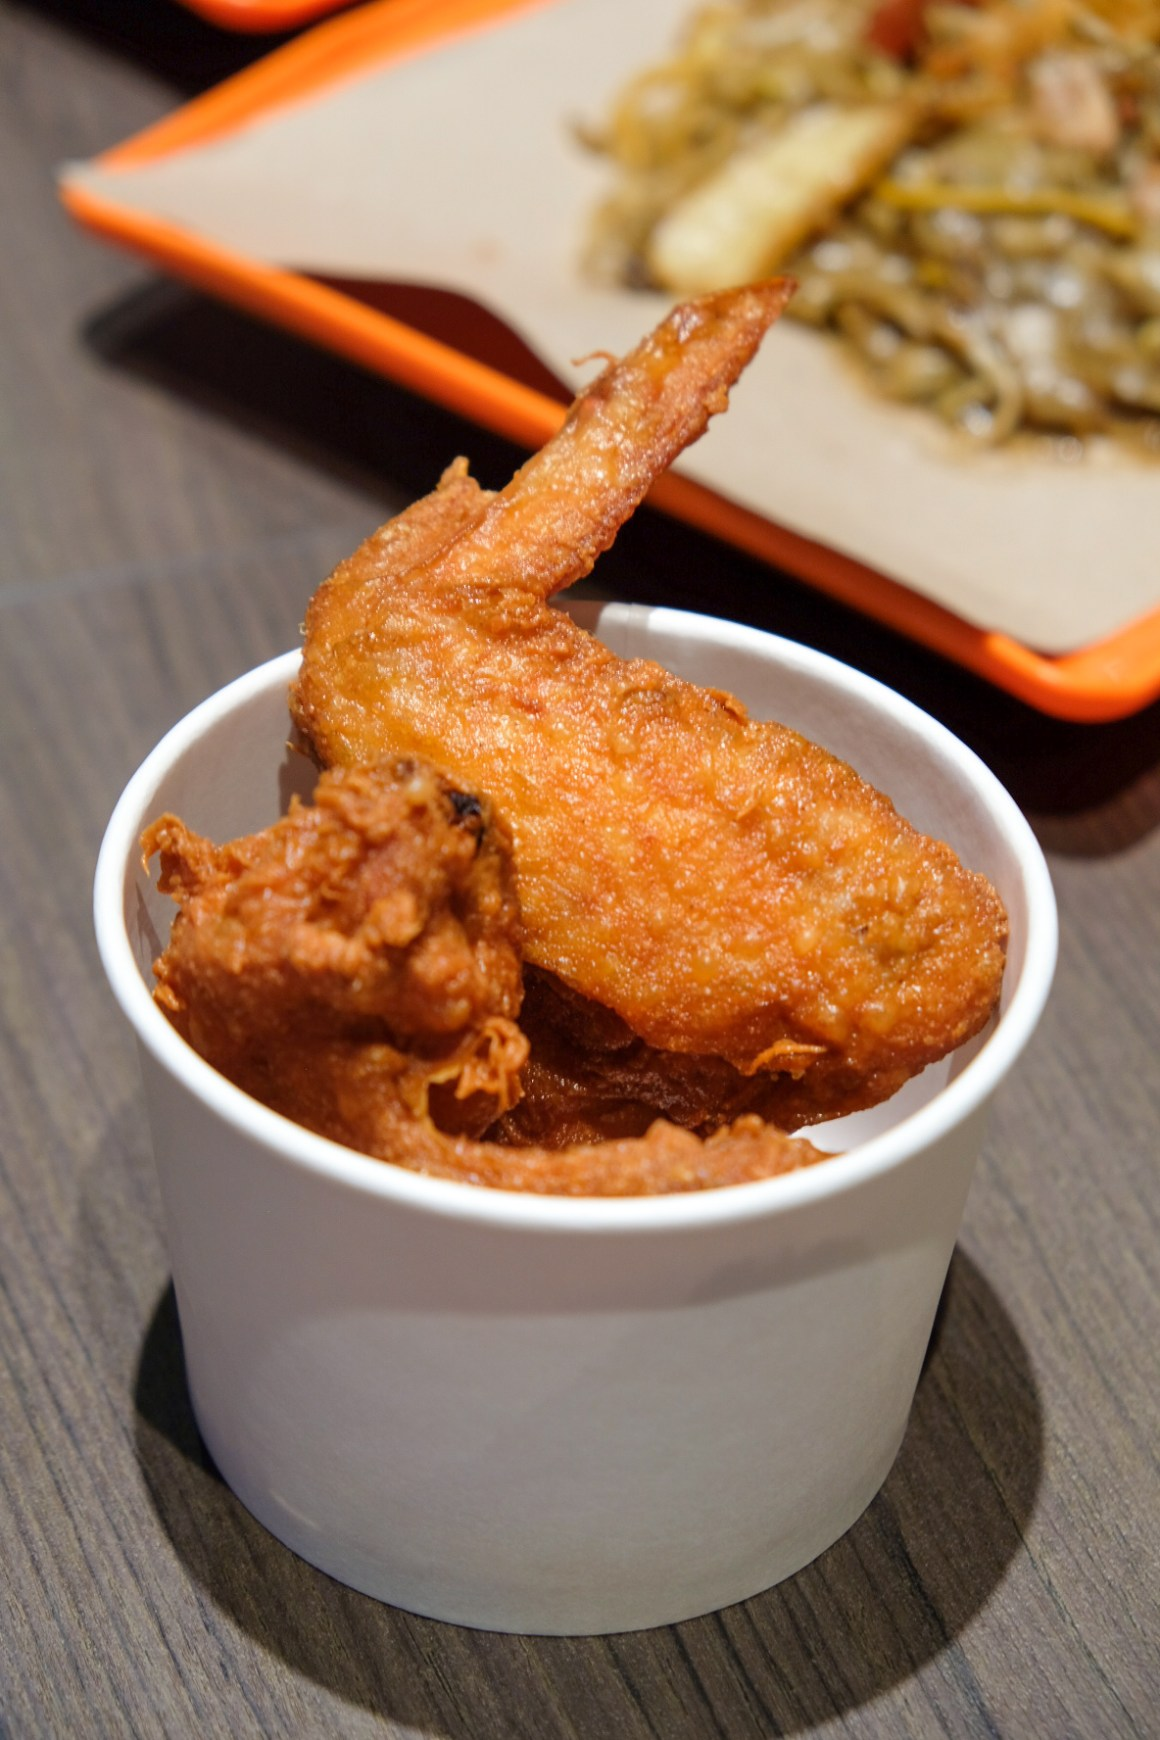 Fried Chicken Wing by Pang's Hakka Noodle